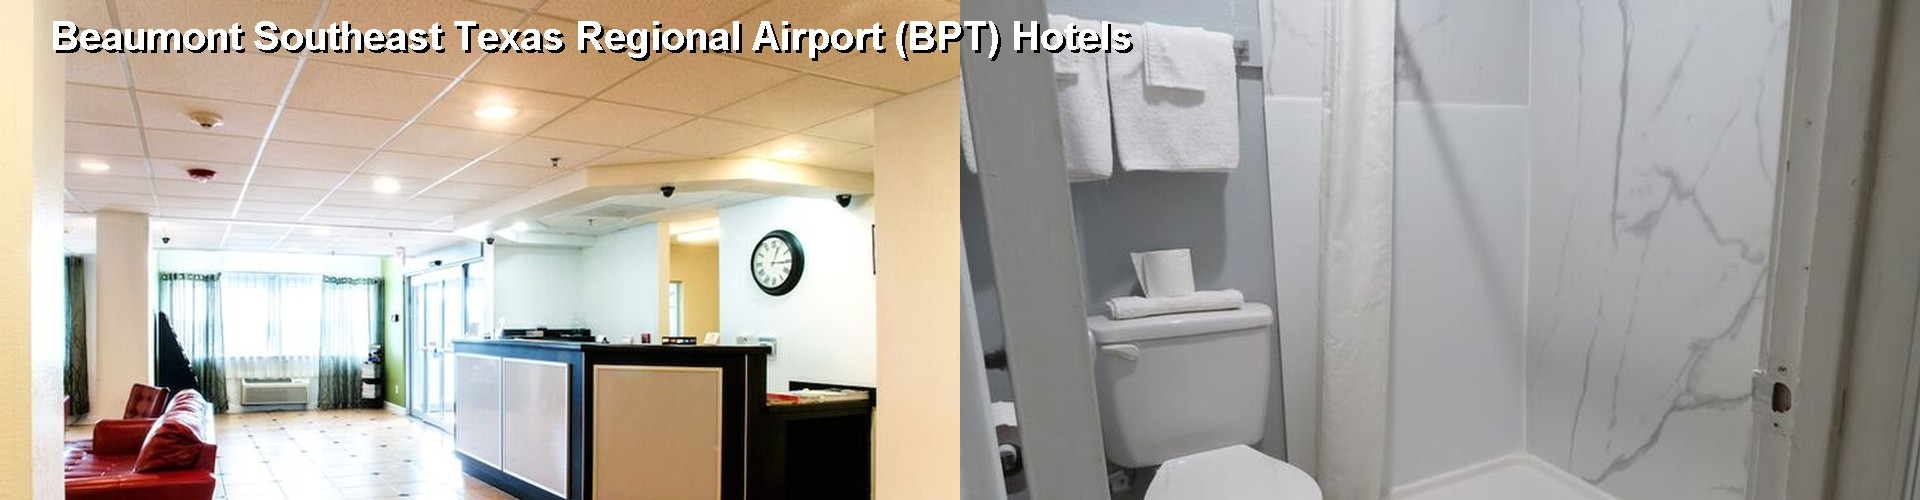 5 Best Hotels near Beaumont Southeast Texas Regional Airport (BPT)